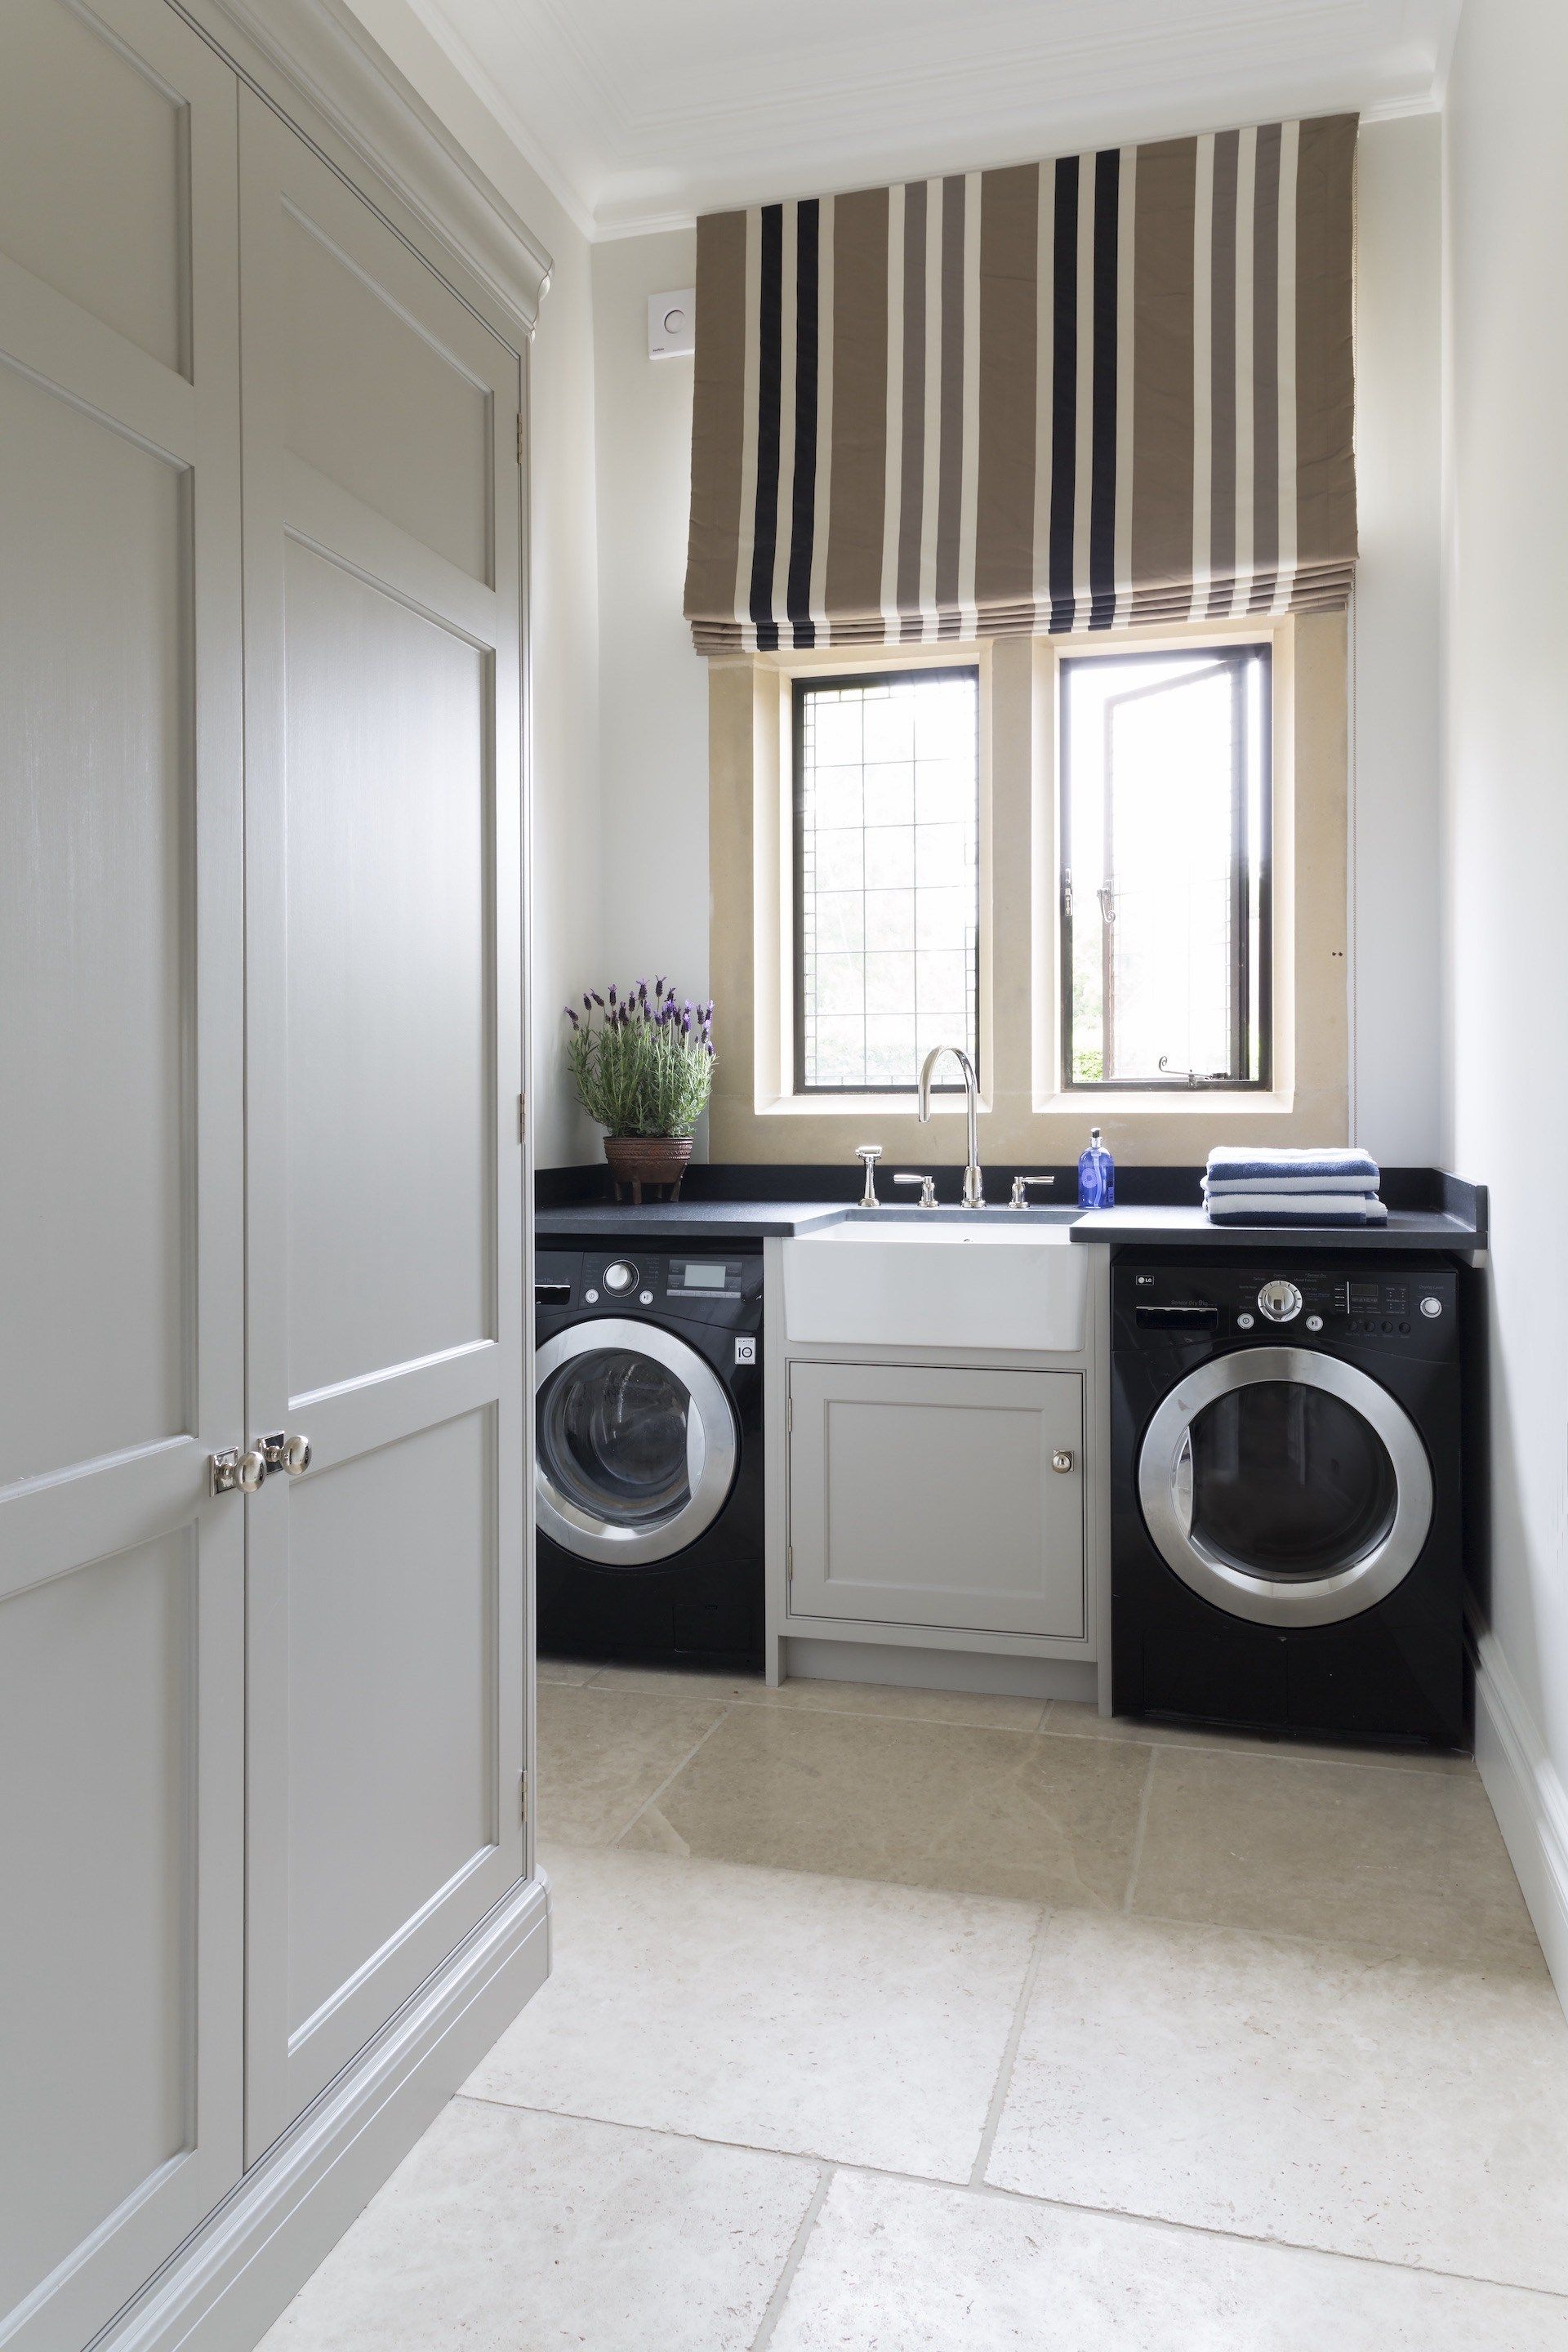 ideas organized room space laundry for beautiful a inspirational and img design